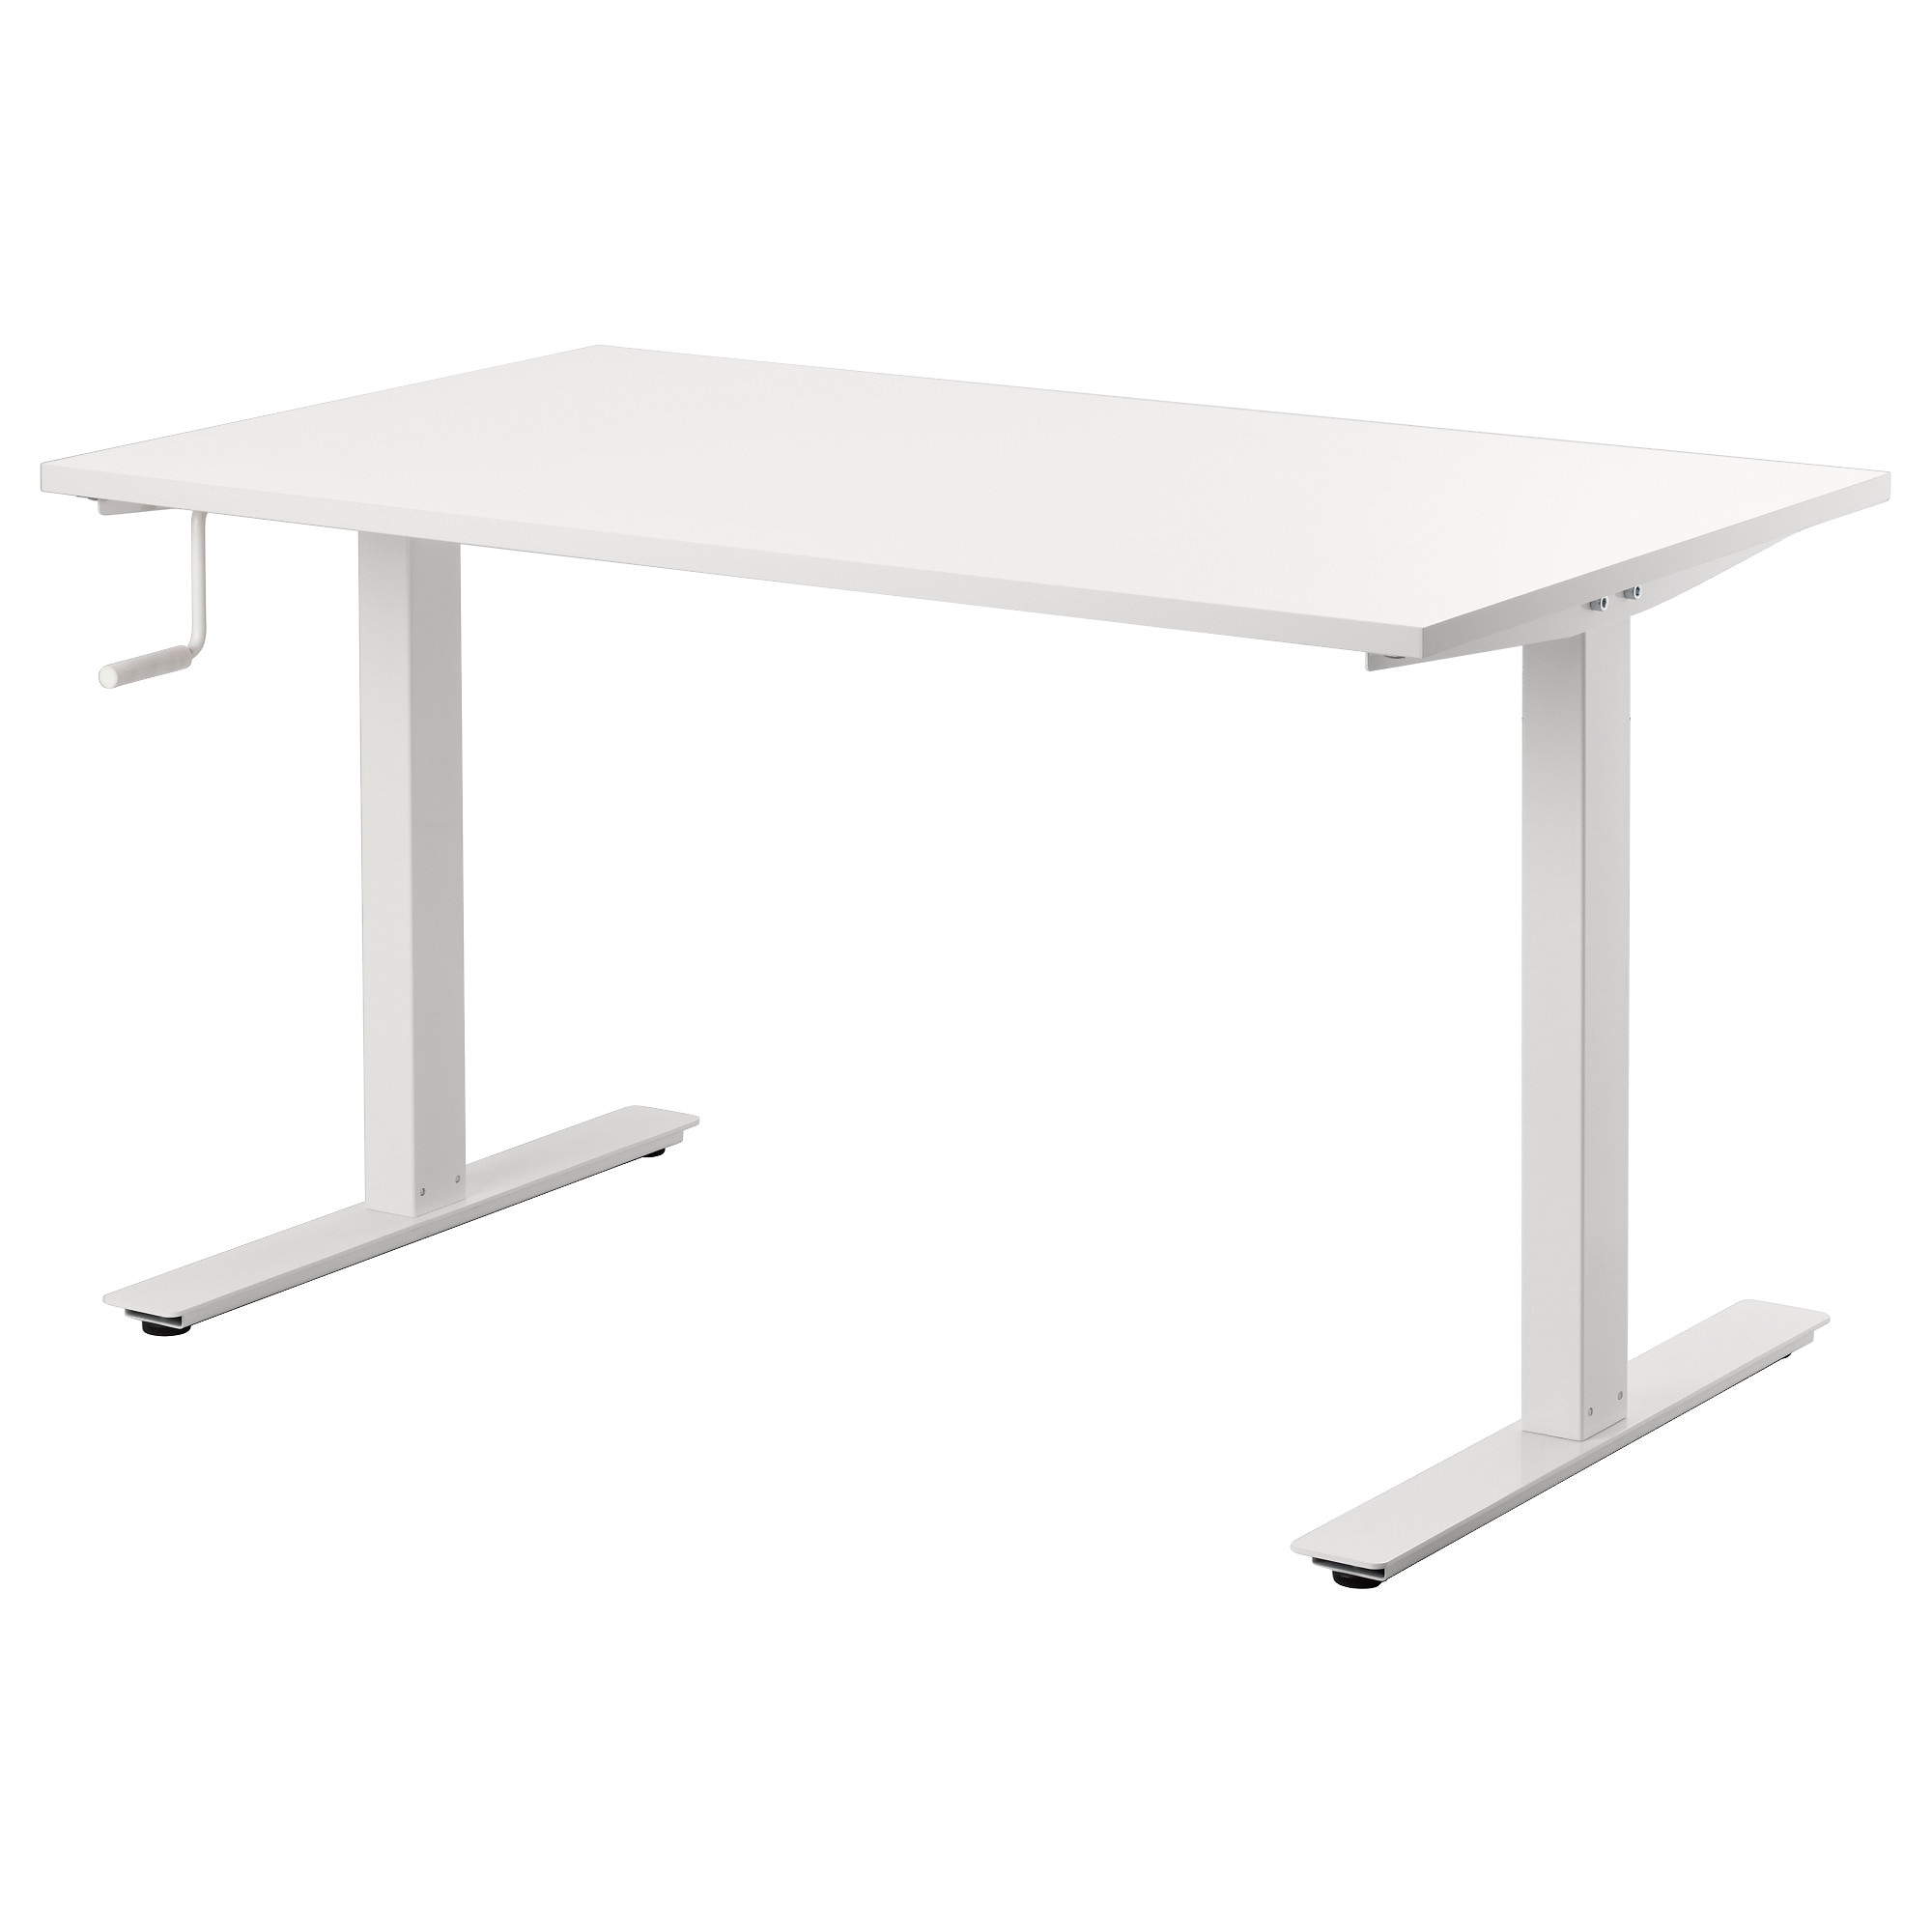 desk table adjustable legs electric height detail buy product